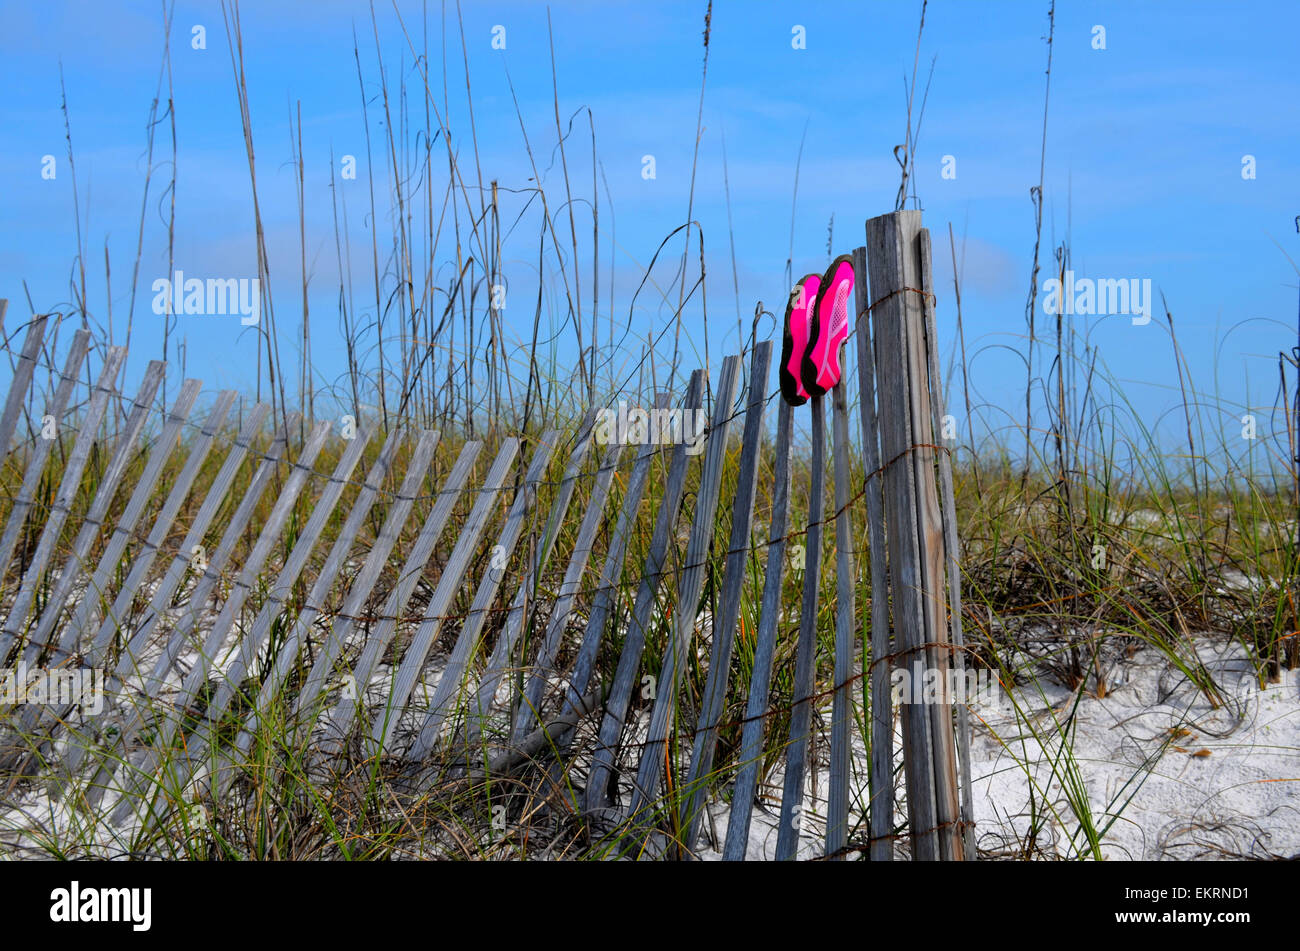 Pink beach shoes drying on a worn weathered fence, set in the white sand dunes of a Gulf of Mexico, Florida beach - Stock Image